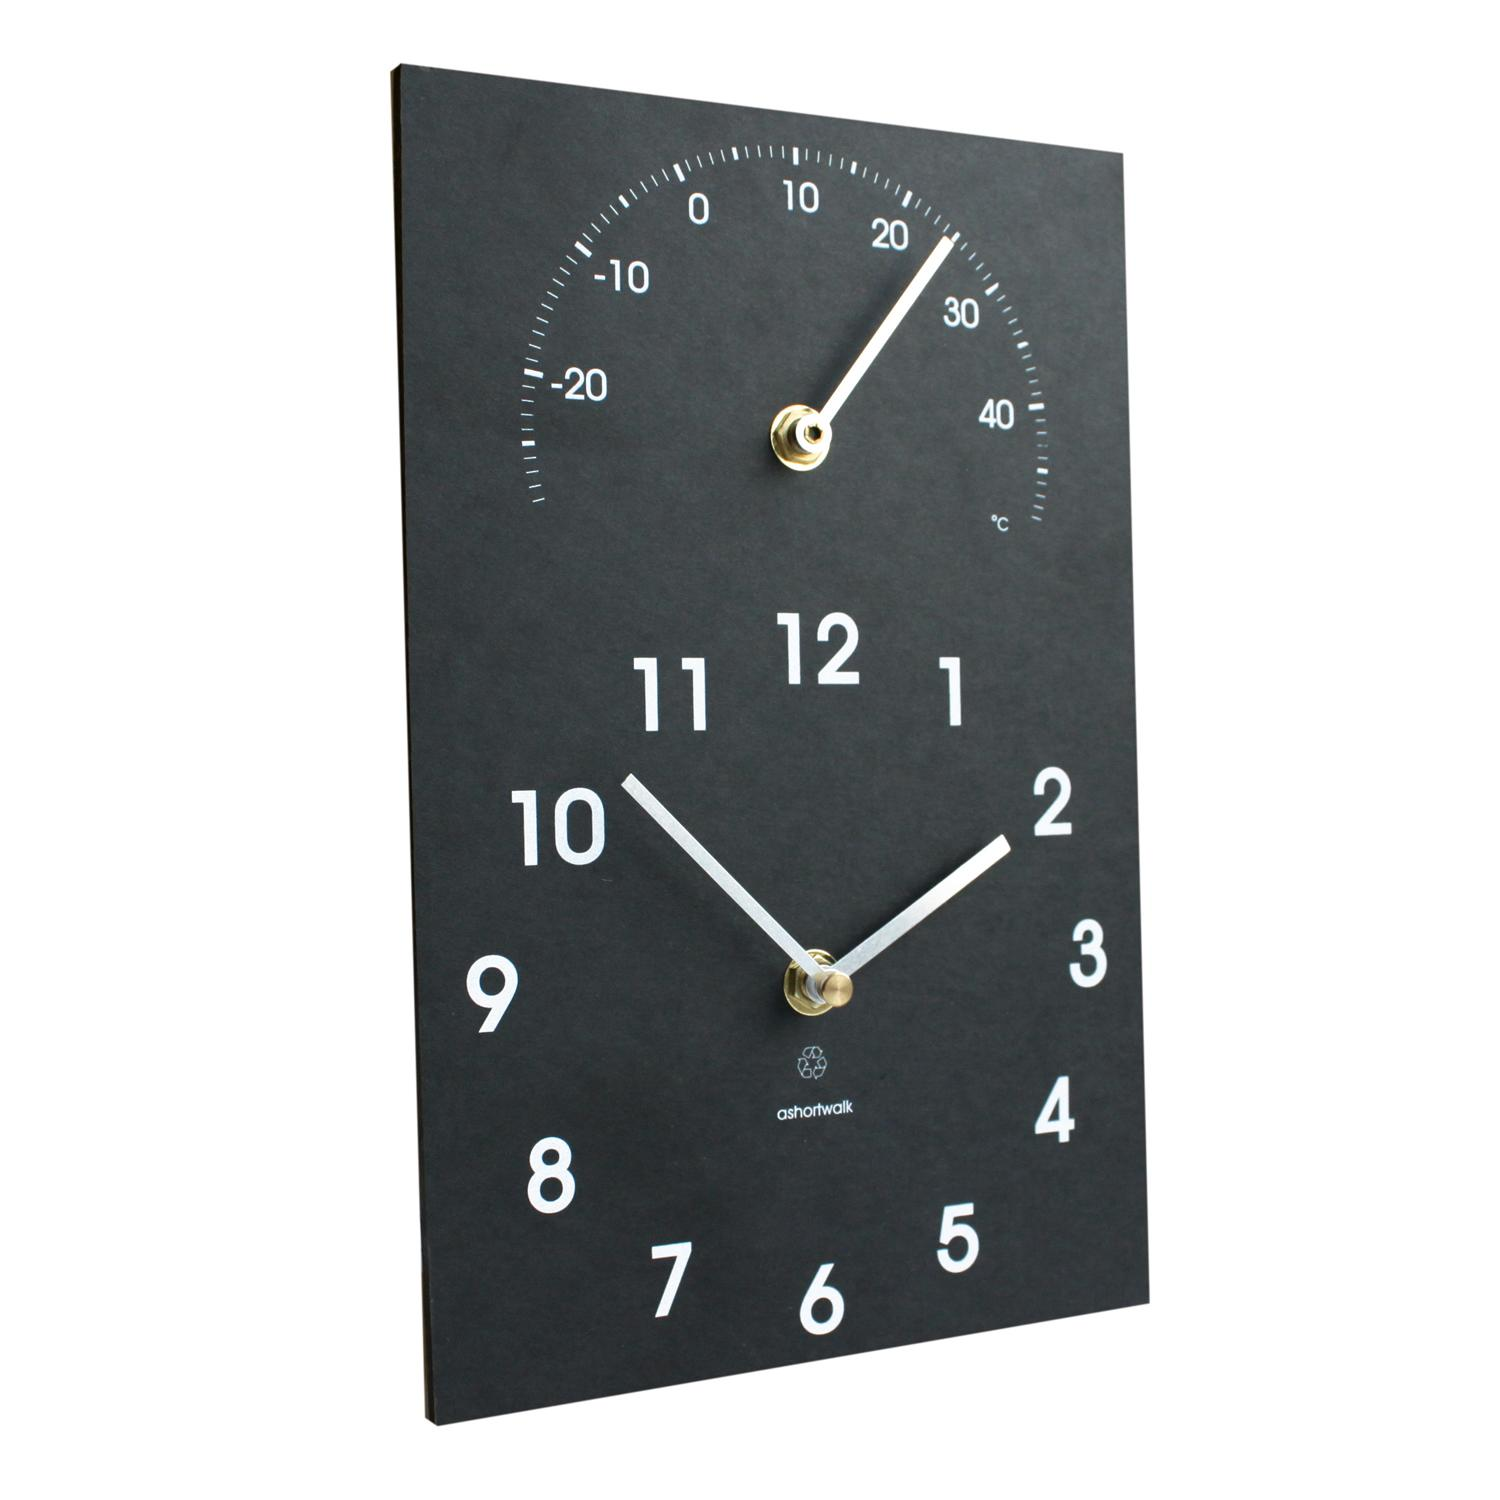 ashortwalk Clock Thermometer